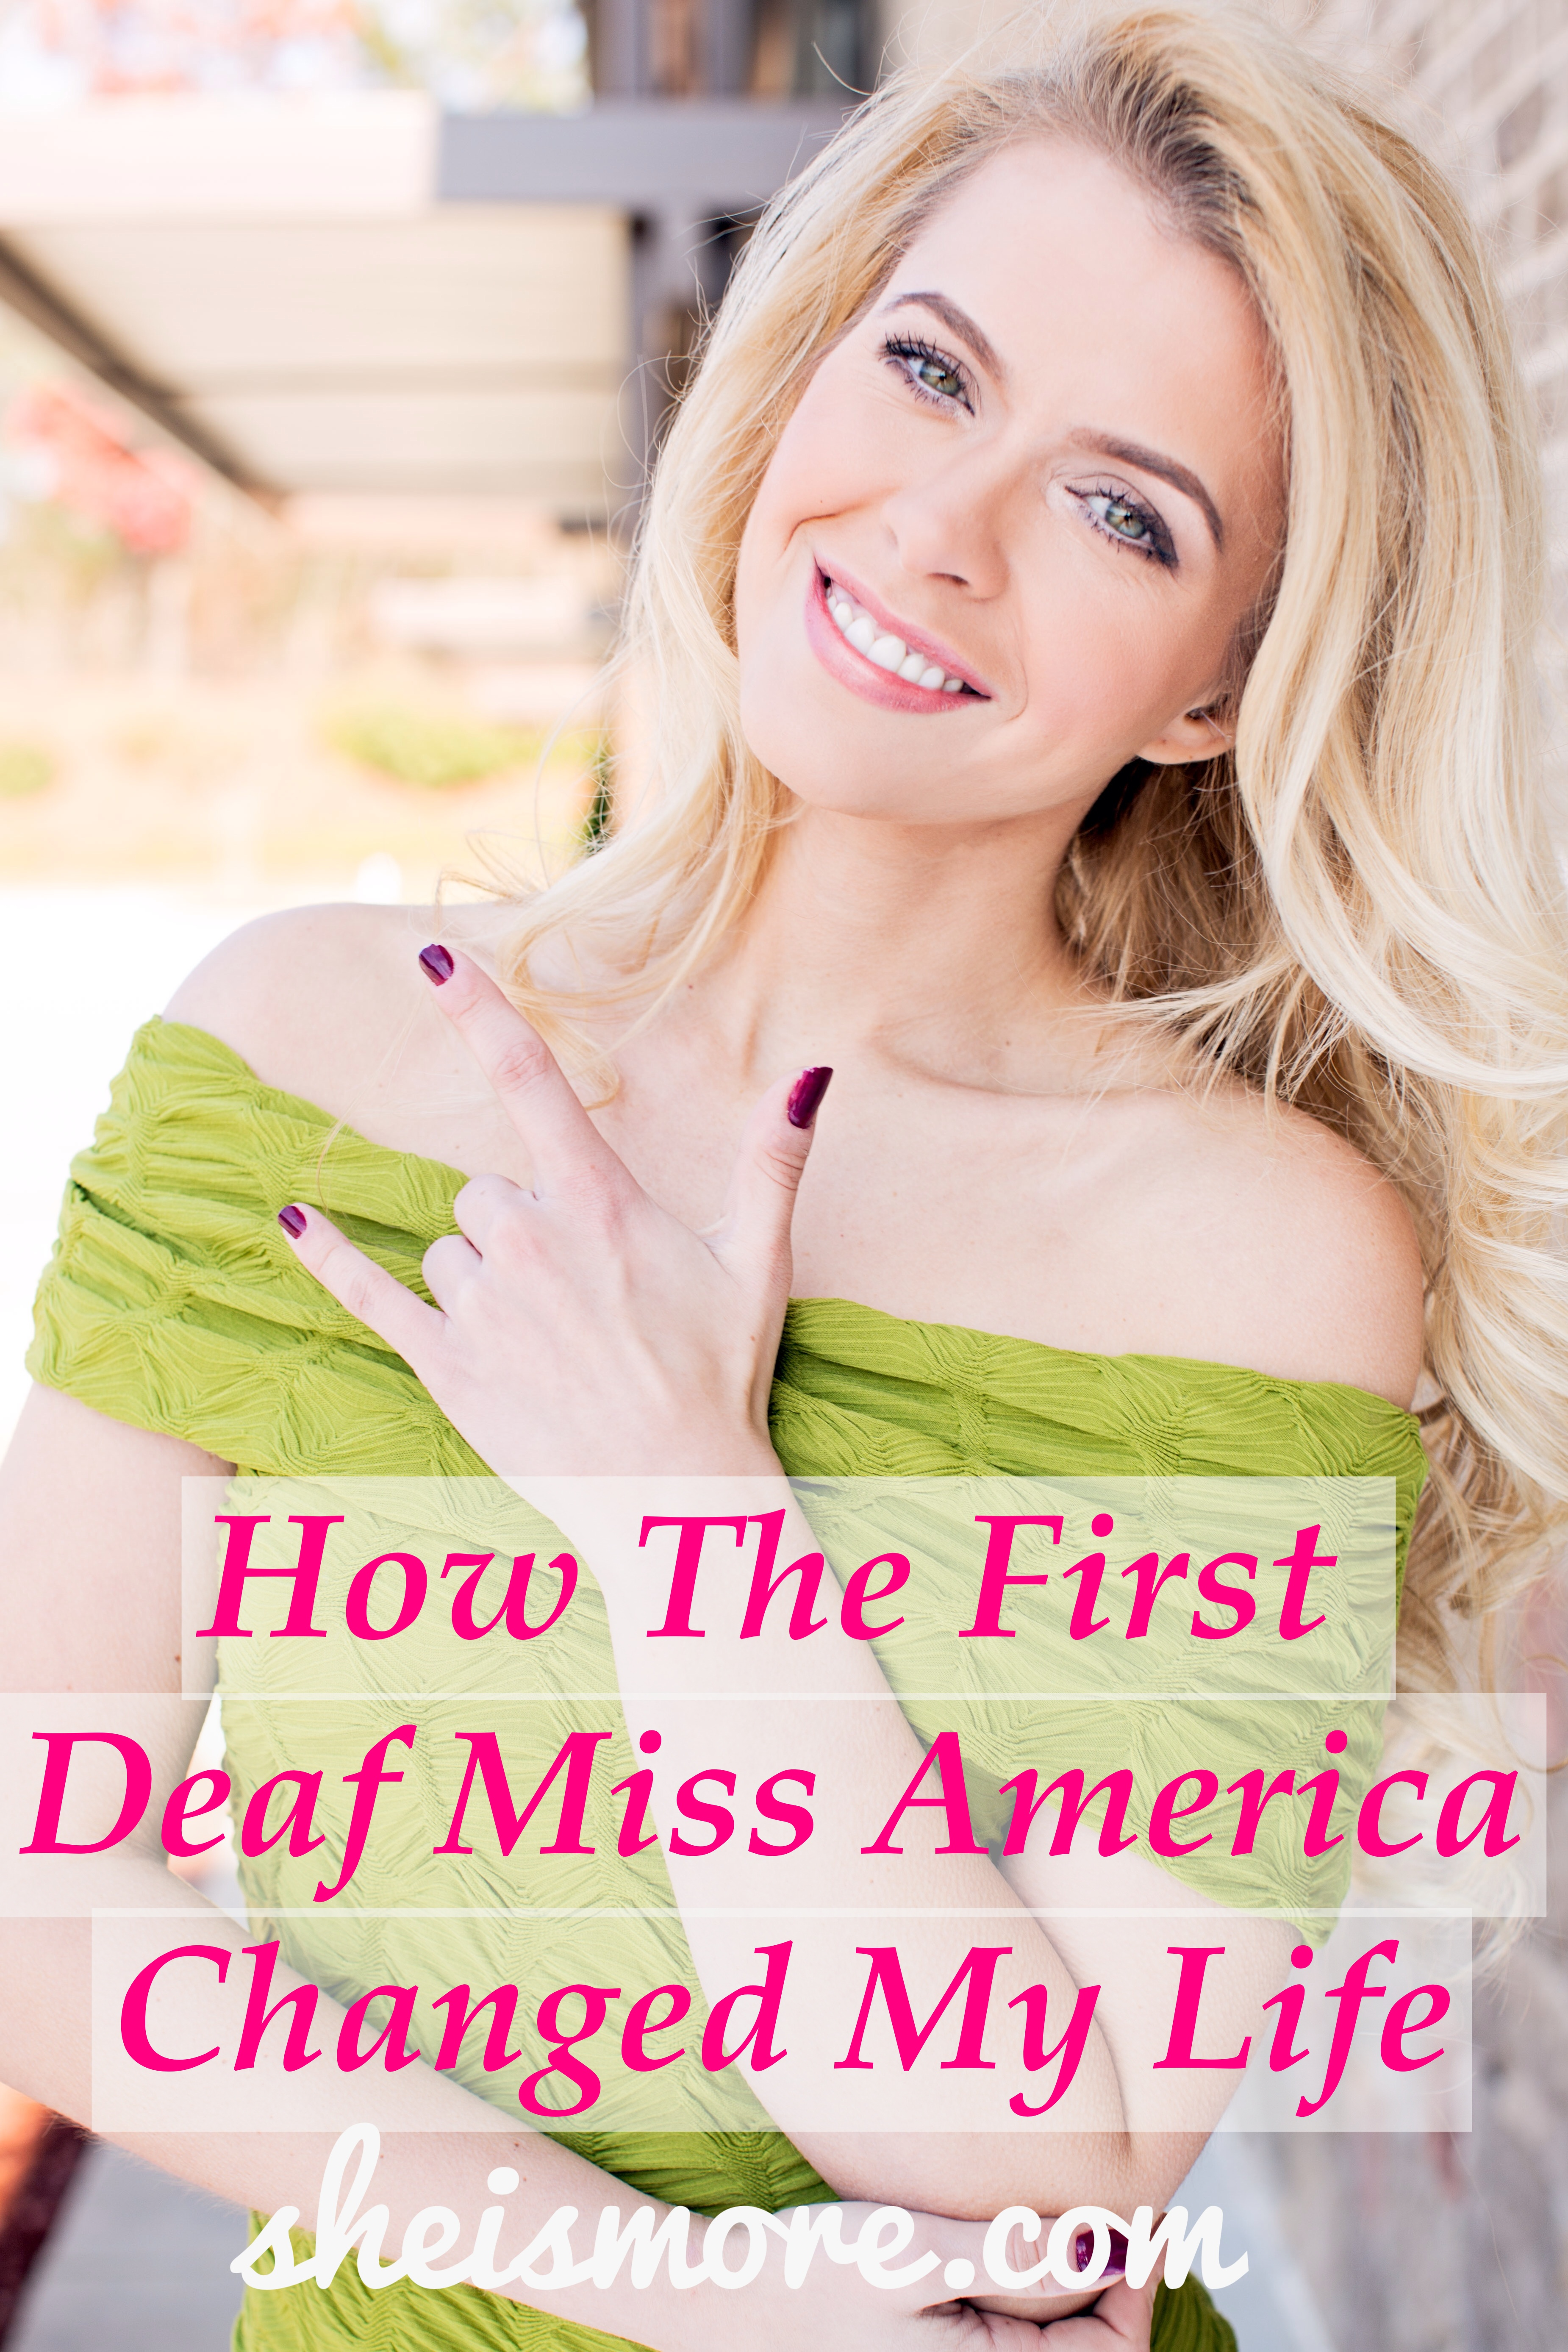 My Miss America: How The First Deaf Miss America Changed My Life